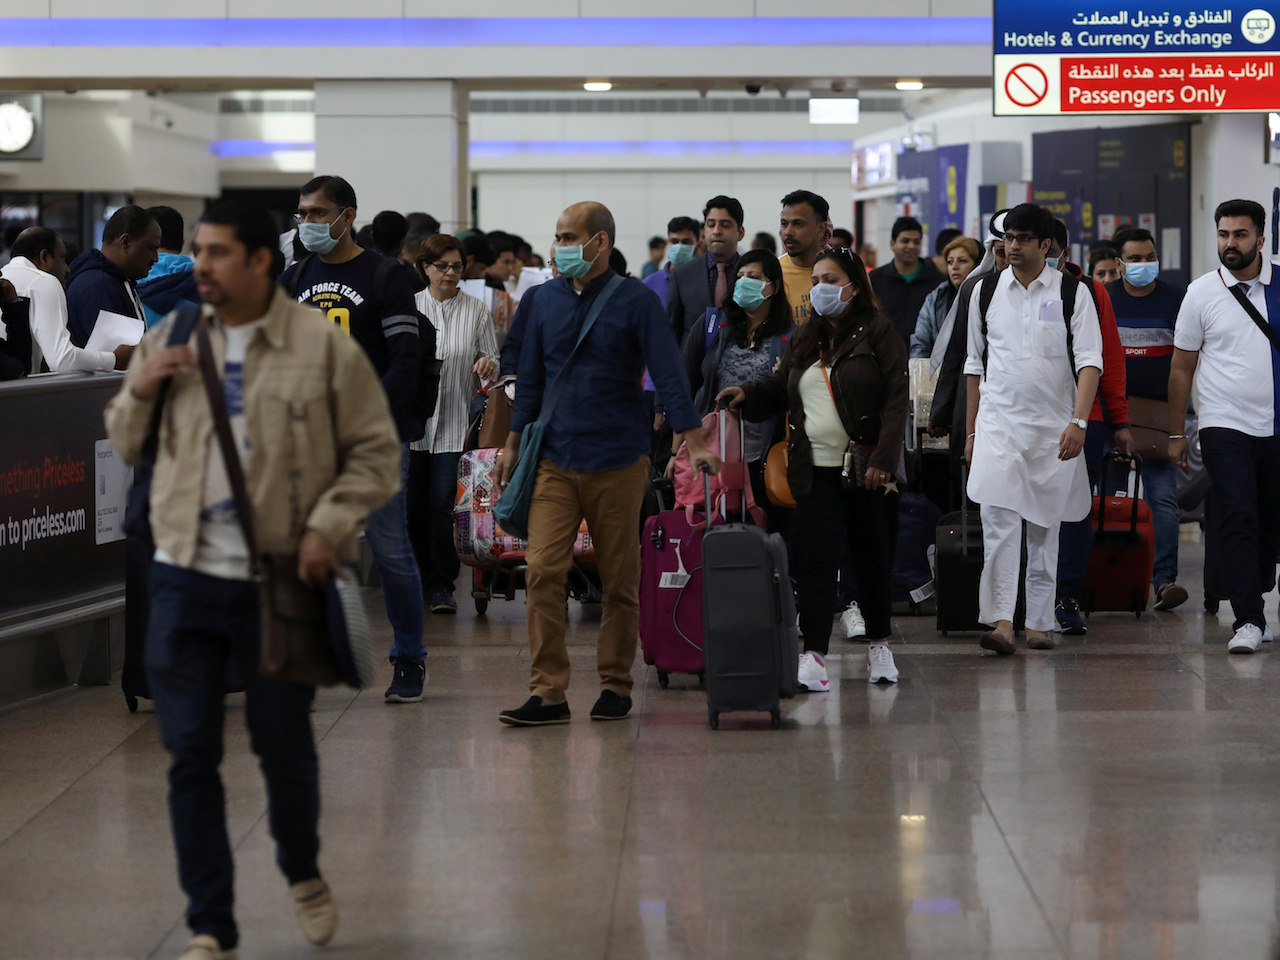 Travellers wear masks as they arrivw at the Dubai International Airport after the UAE's Ministry of Health and Community Prevention confirmed the country's first case of coronavirus in Dubai